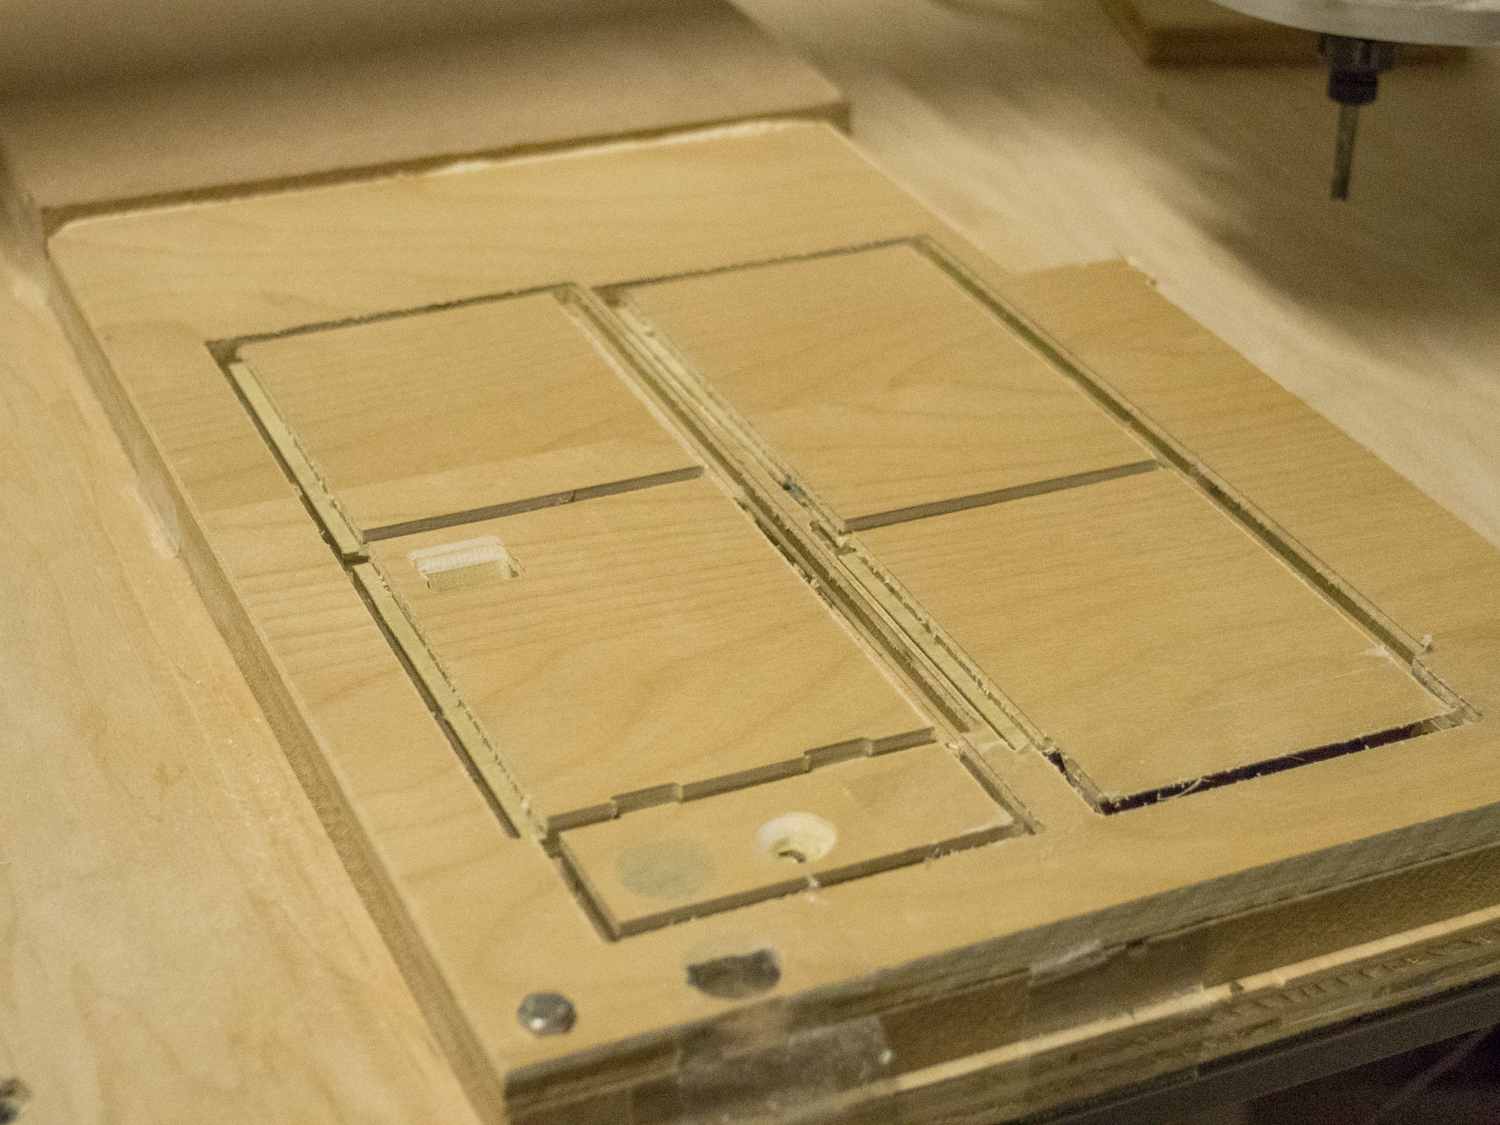 A prototype box was machined out of wood, the final product is white Delrin